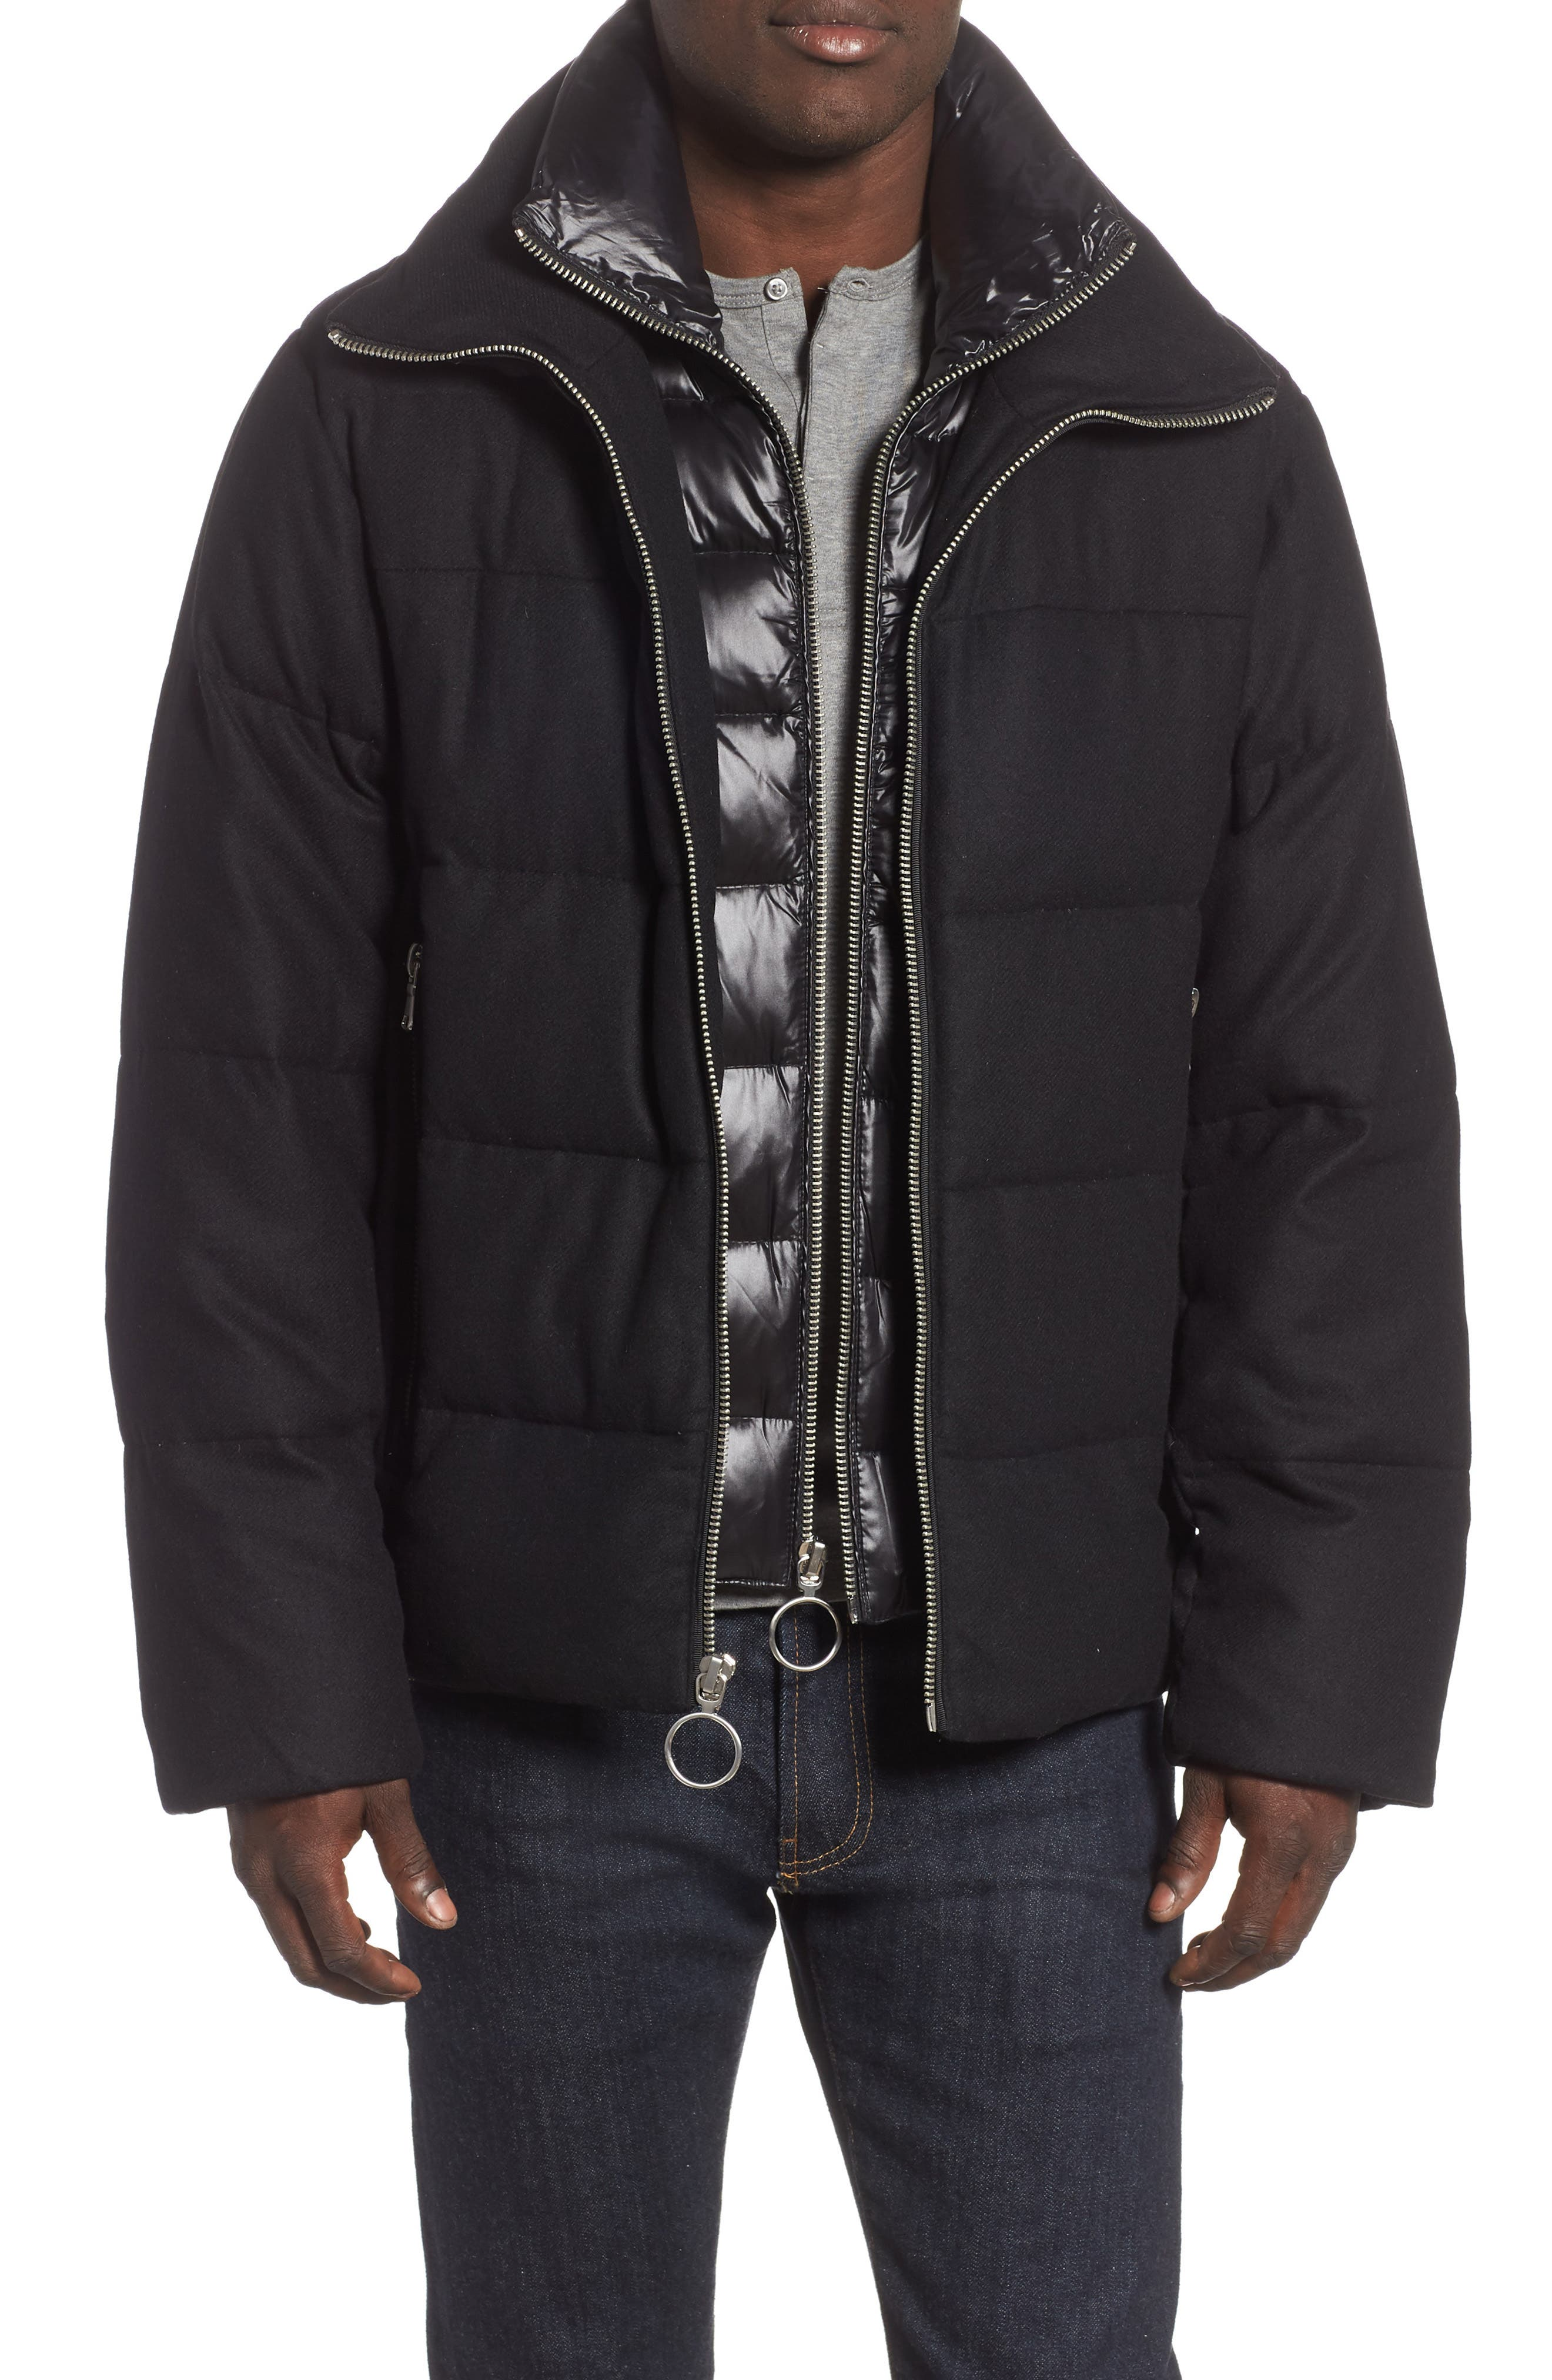 The Very Warm Wool Blend Puffer Jacket